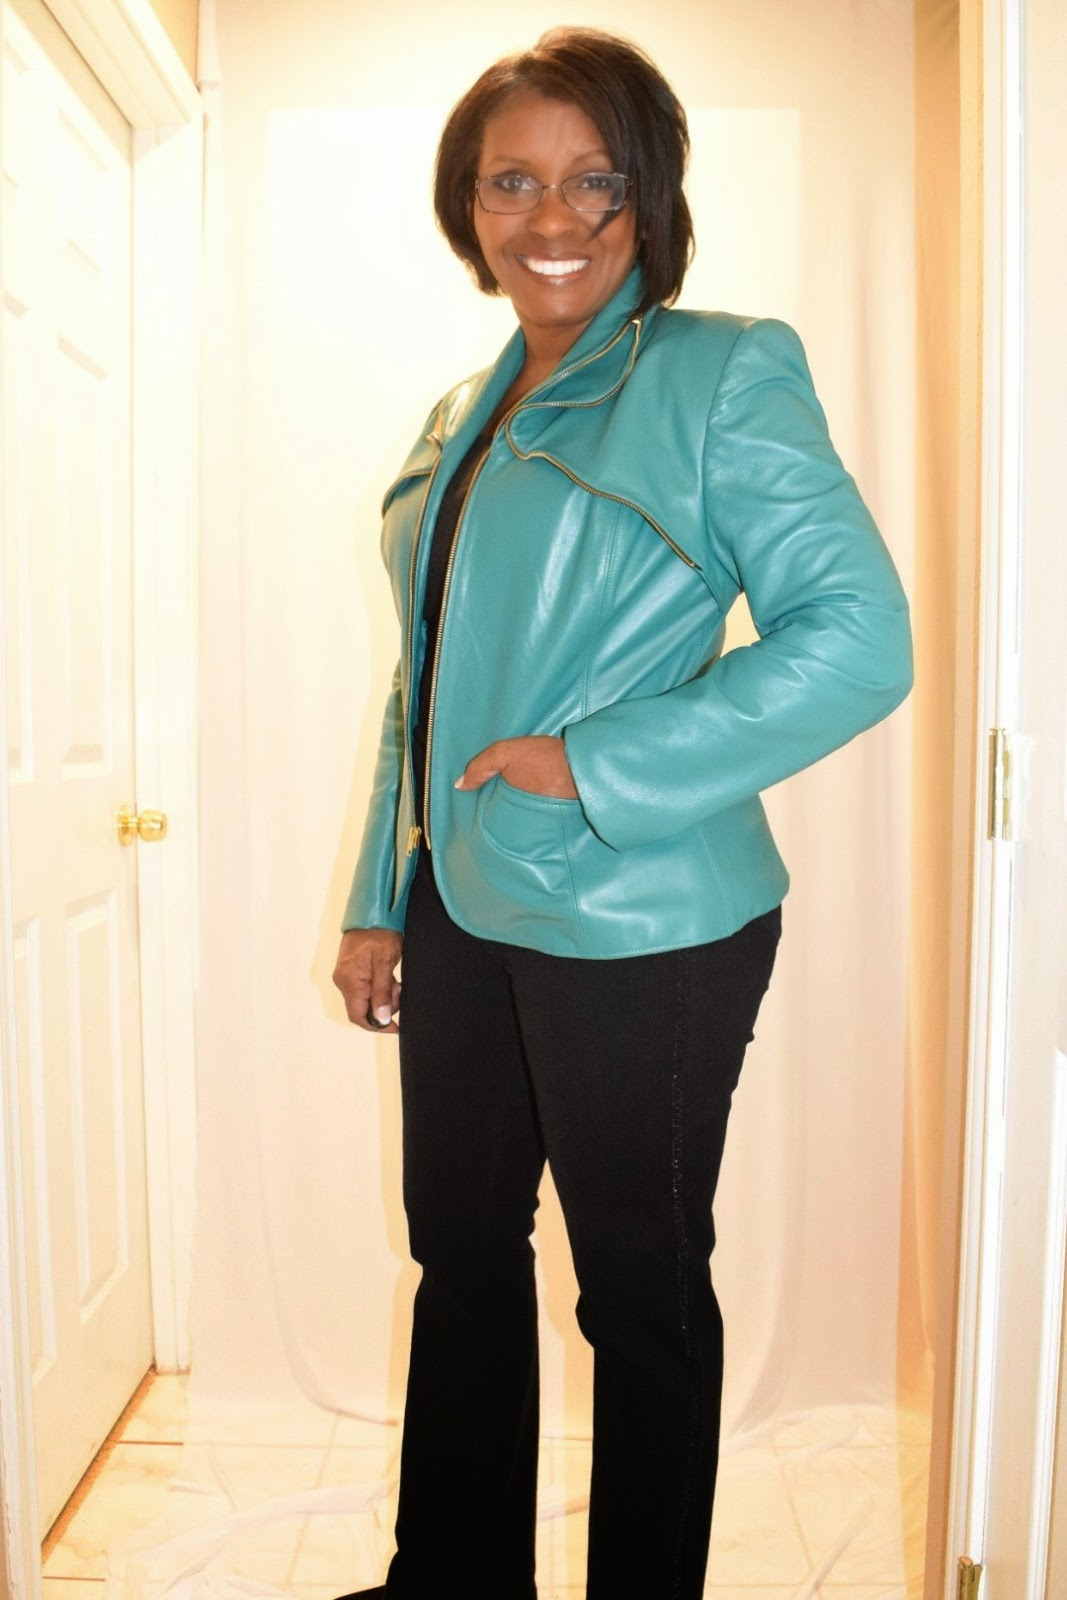 Teal, green lambskin leather jacket with zippers by sewtofit.com Sewing with leather.